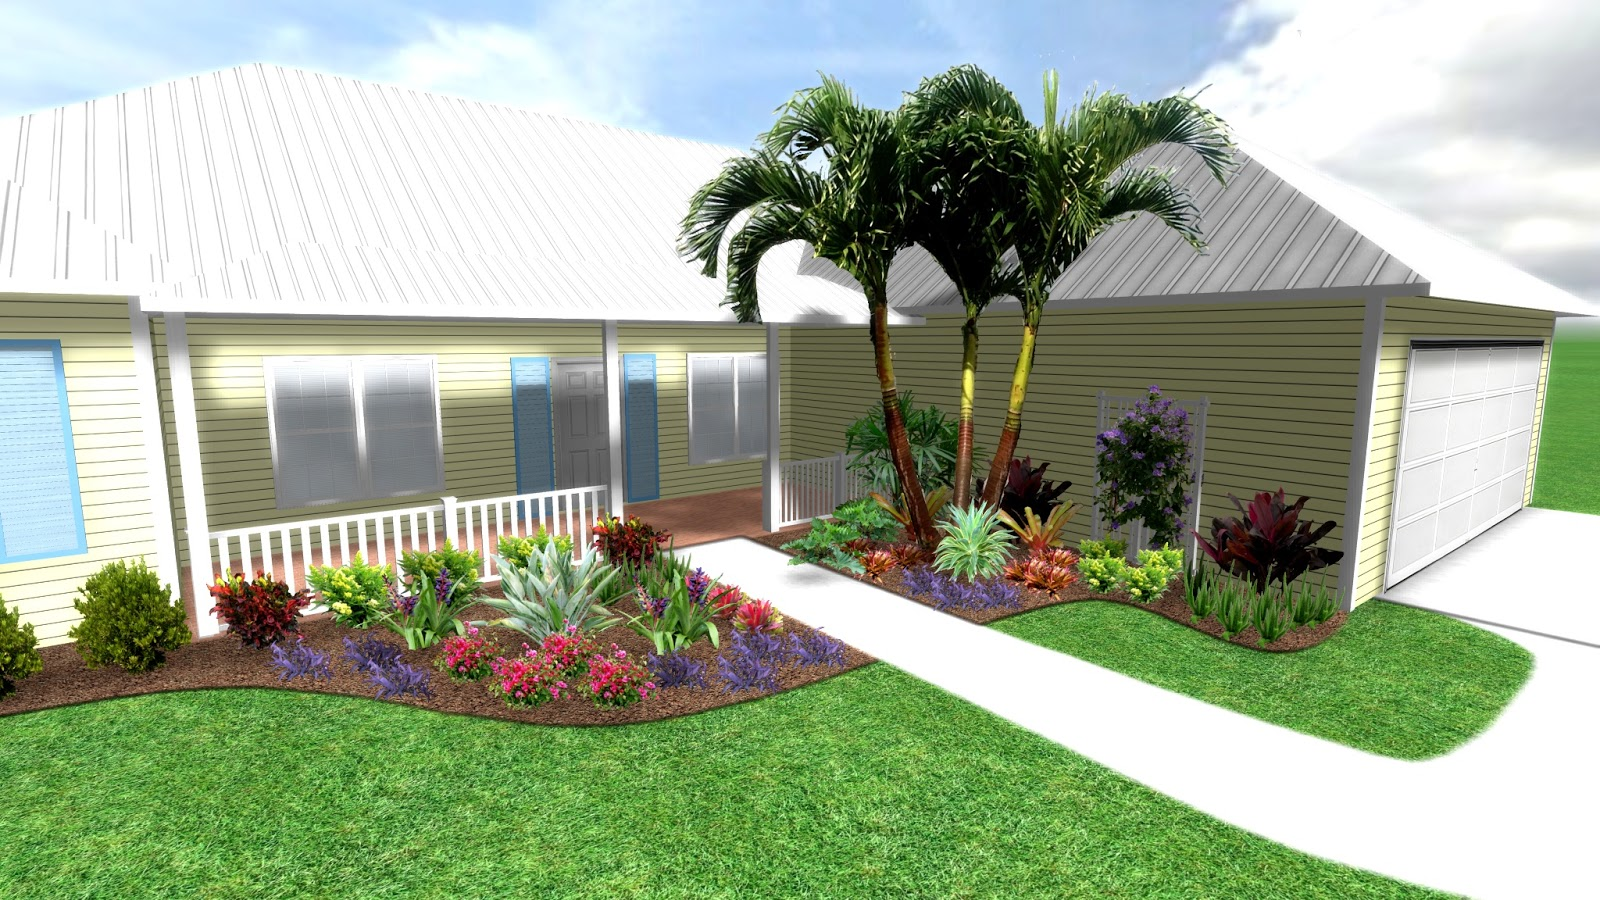 Tropical plant design for front yard landscape design in for Florida landscape ideas front yard